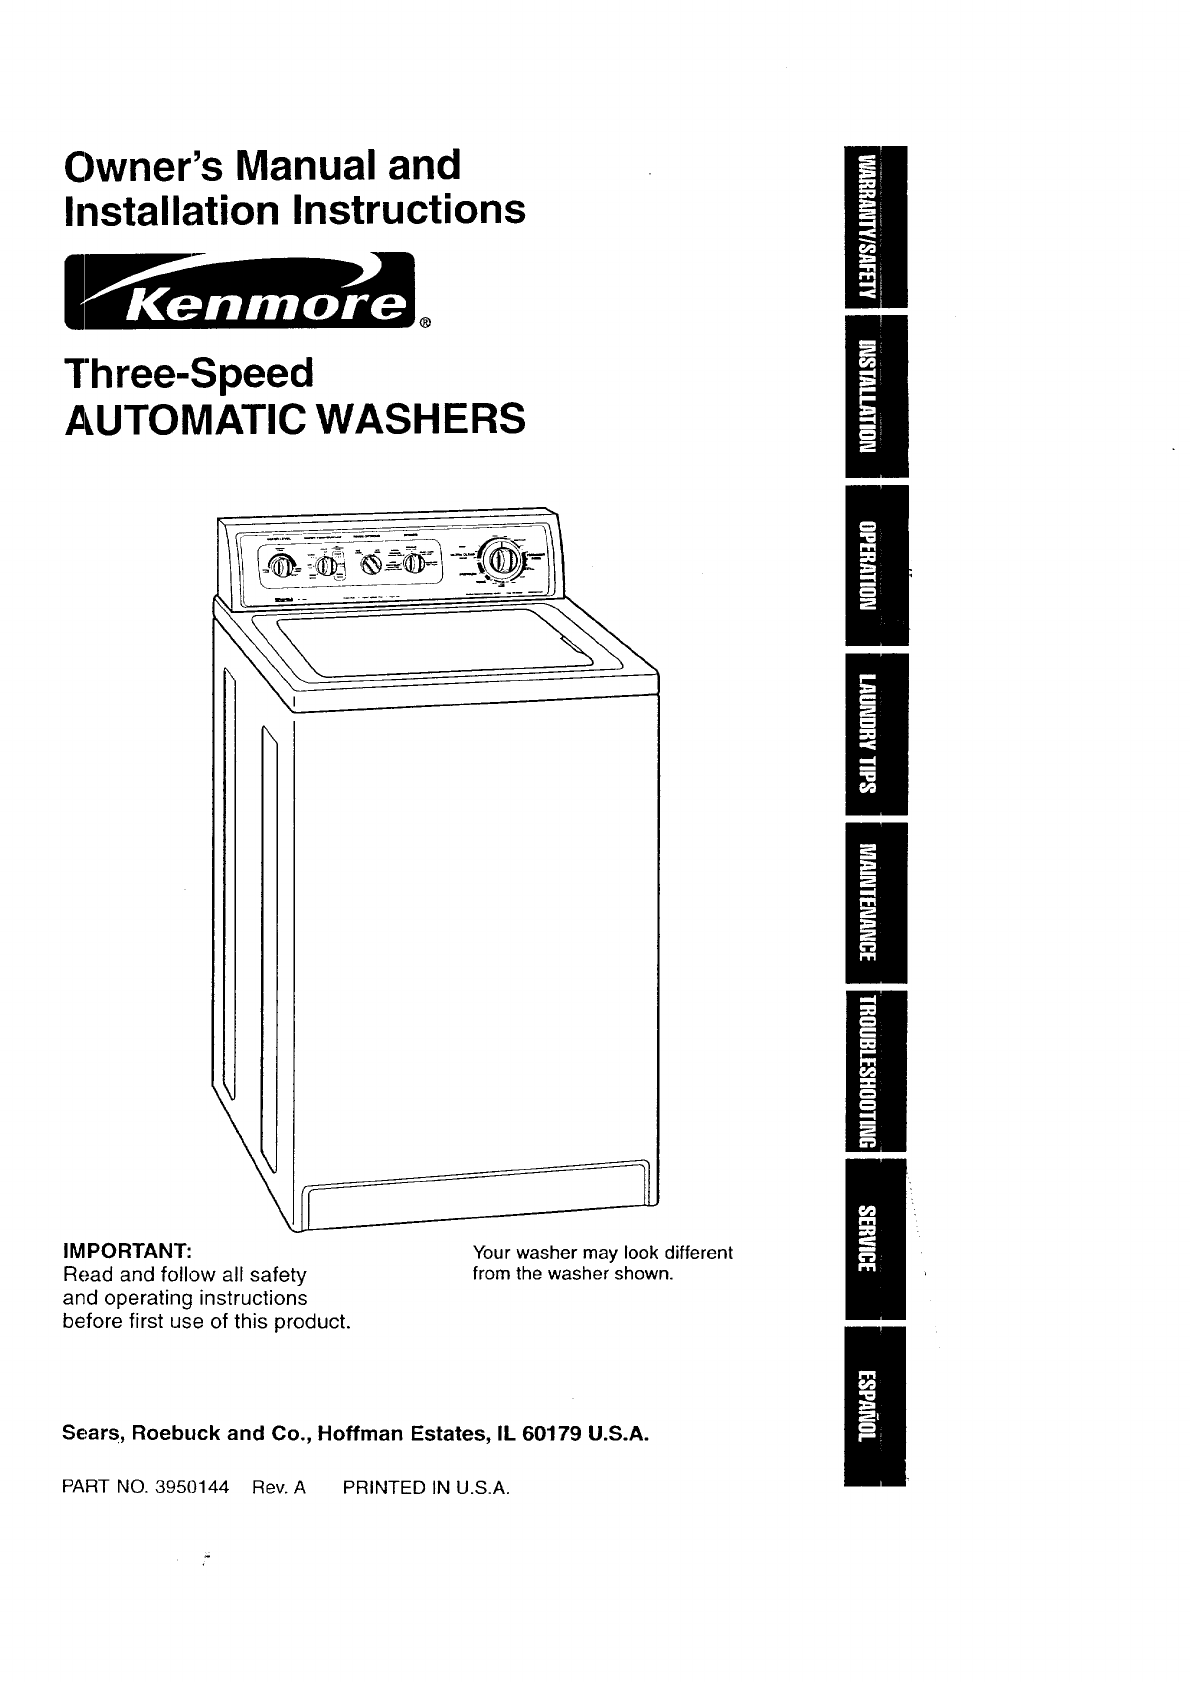 sears kenmore service manual today manual guide trends sample u2022 rh brookejasmine co Kenmore Elite Refrigerator Kenmore Elite Refrigerator